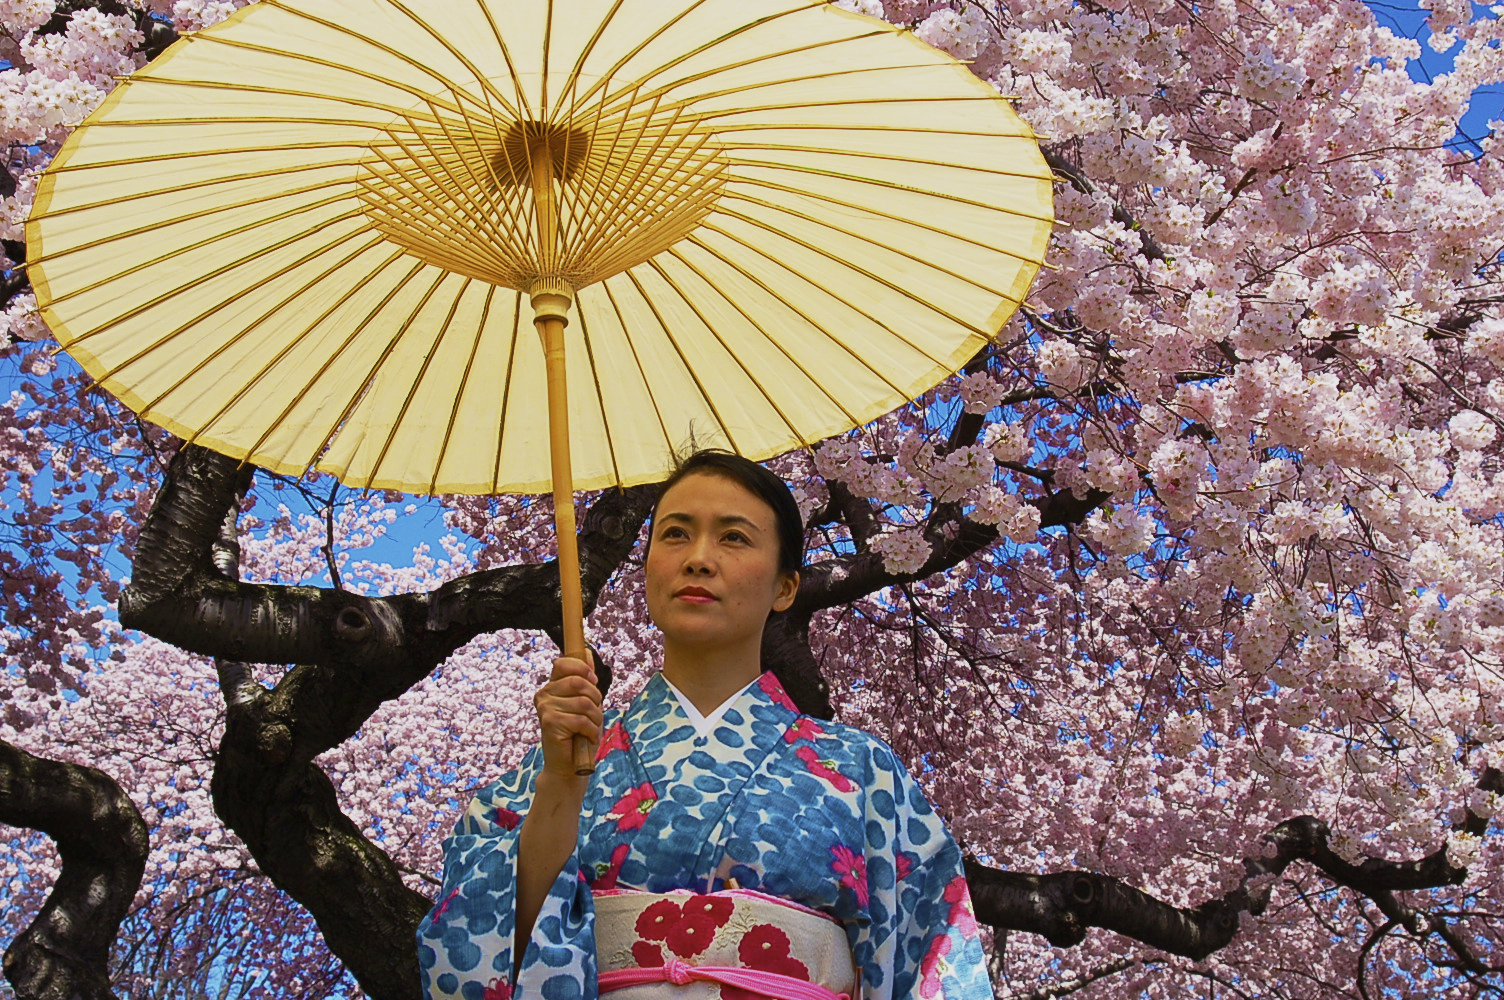 In this photograph, the cherry blossoms reveals something about the portrait subject's Japanese culture.- Chase Guttman